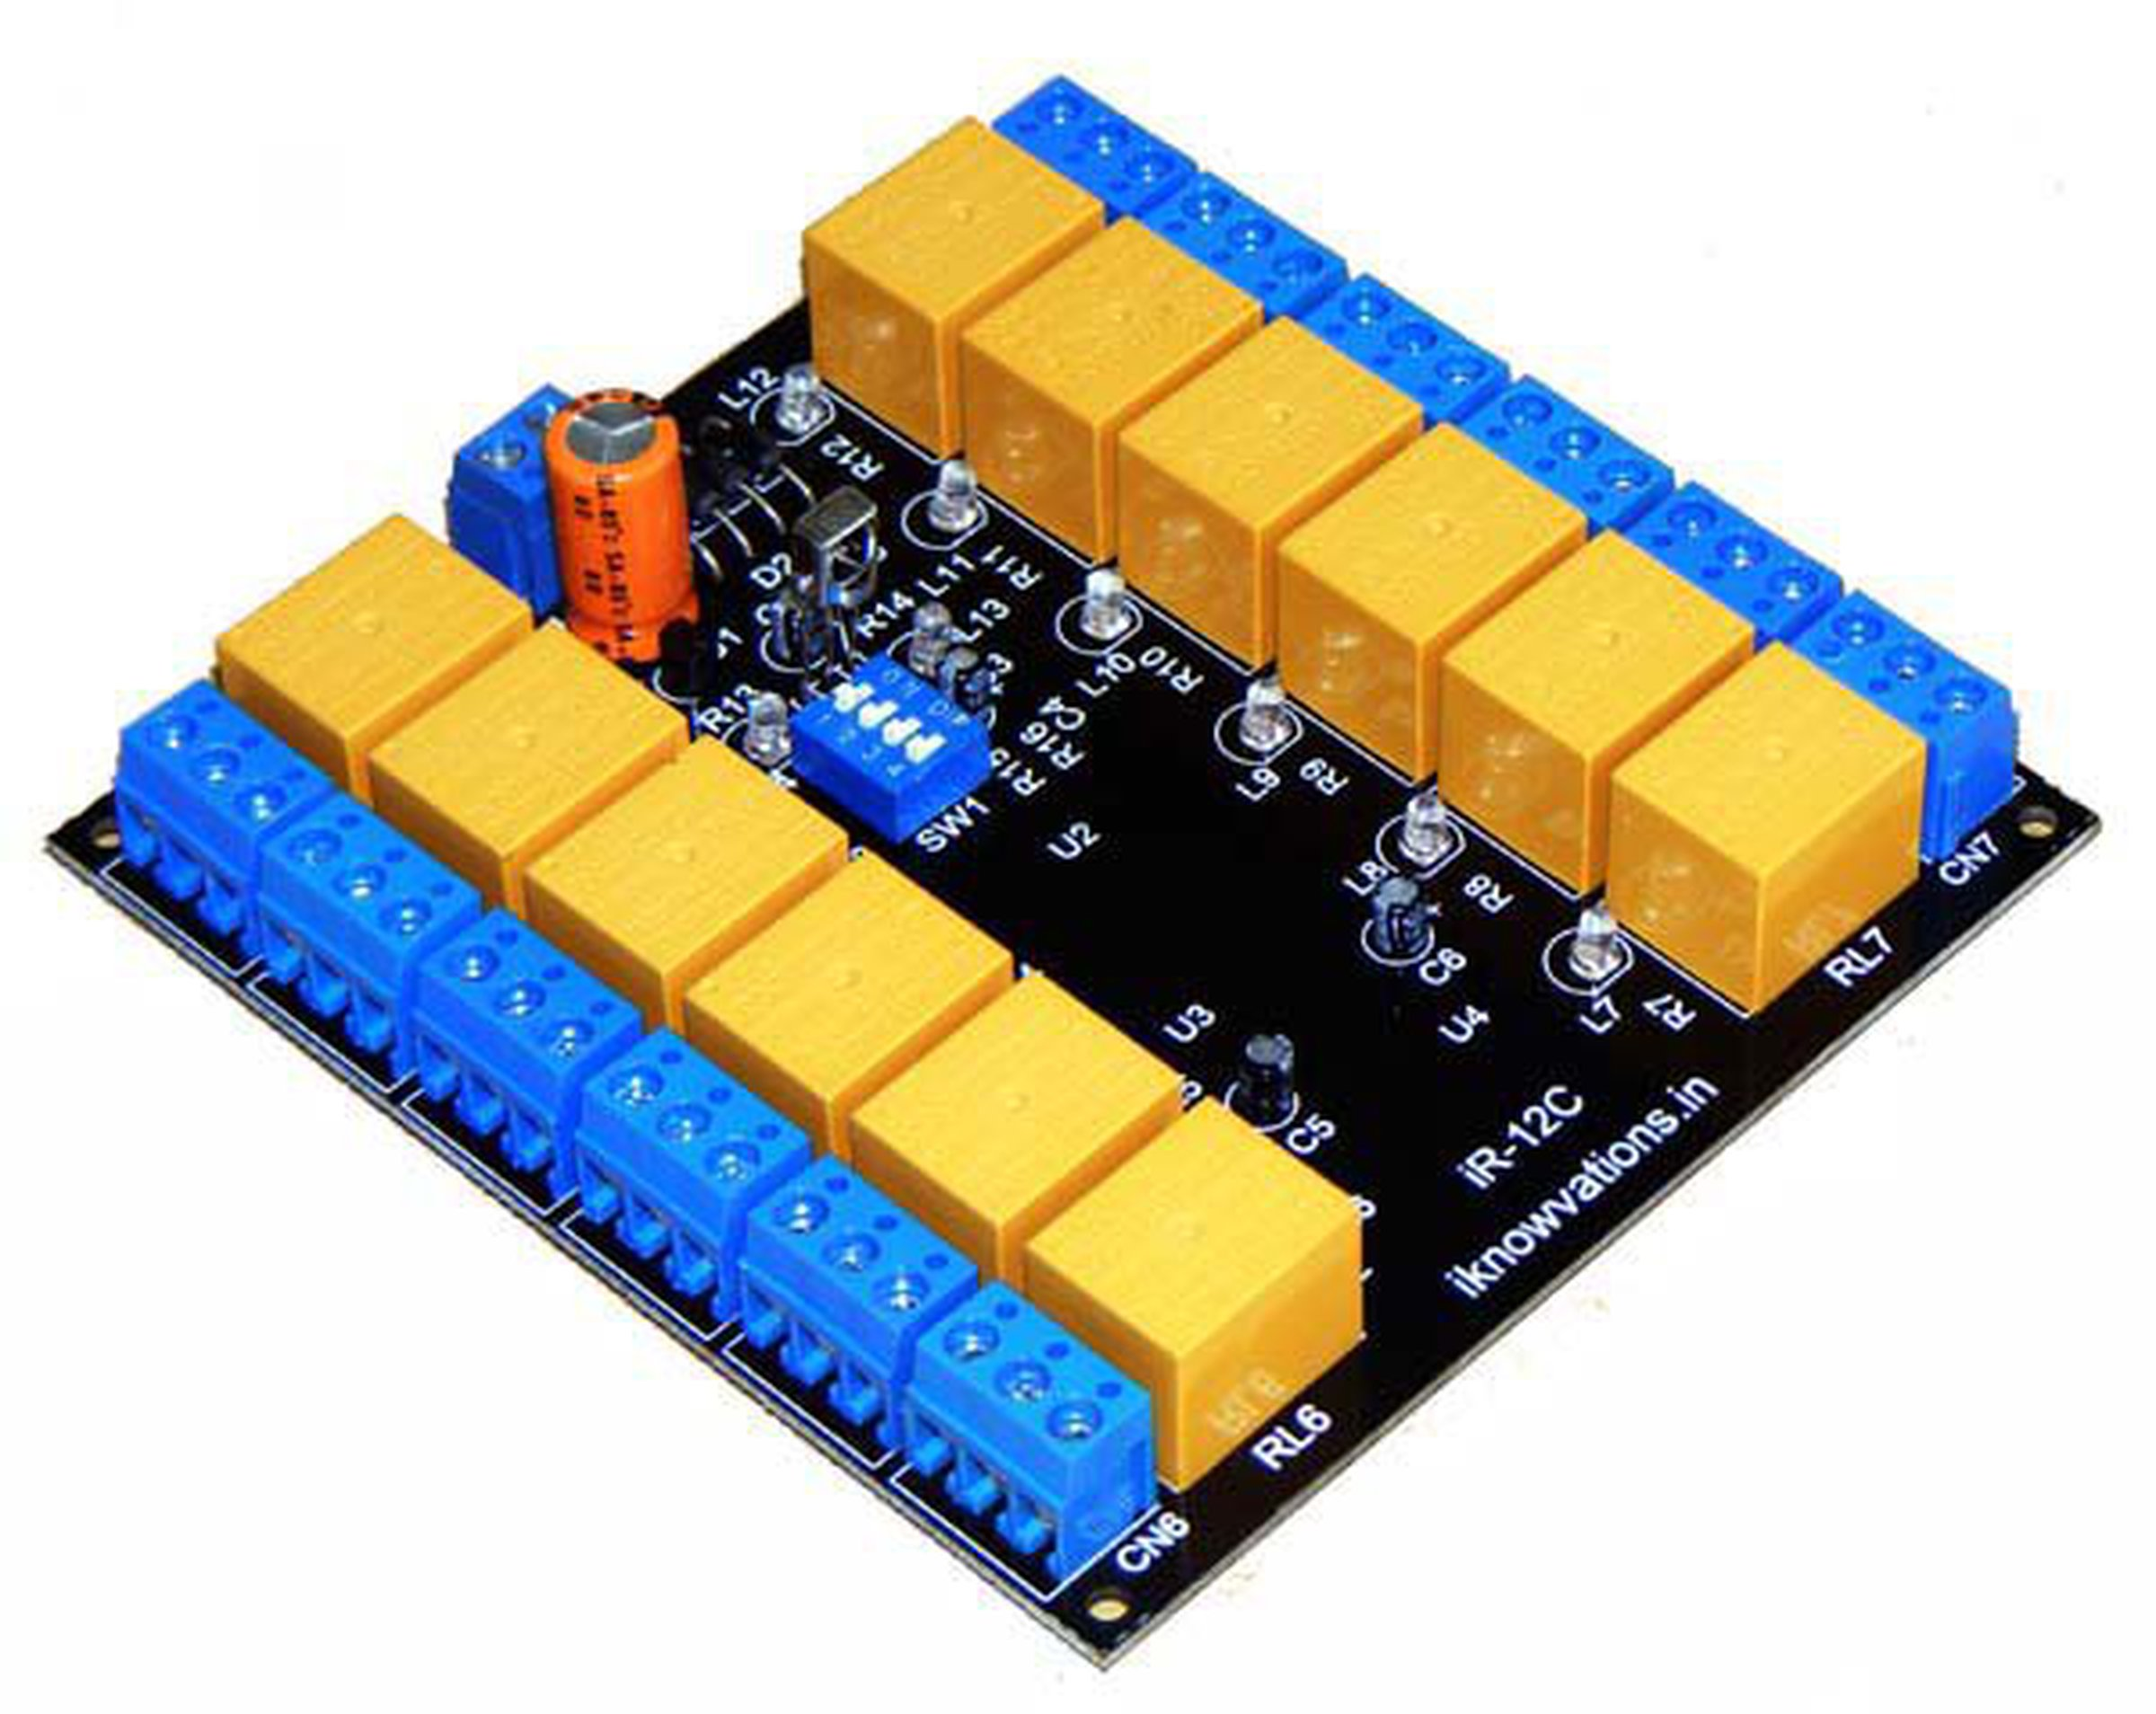 12 Ch Programmable Ir Remote Relay Card From Iknowvations On Tindie Infrared Control Sale Channel Board 12c